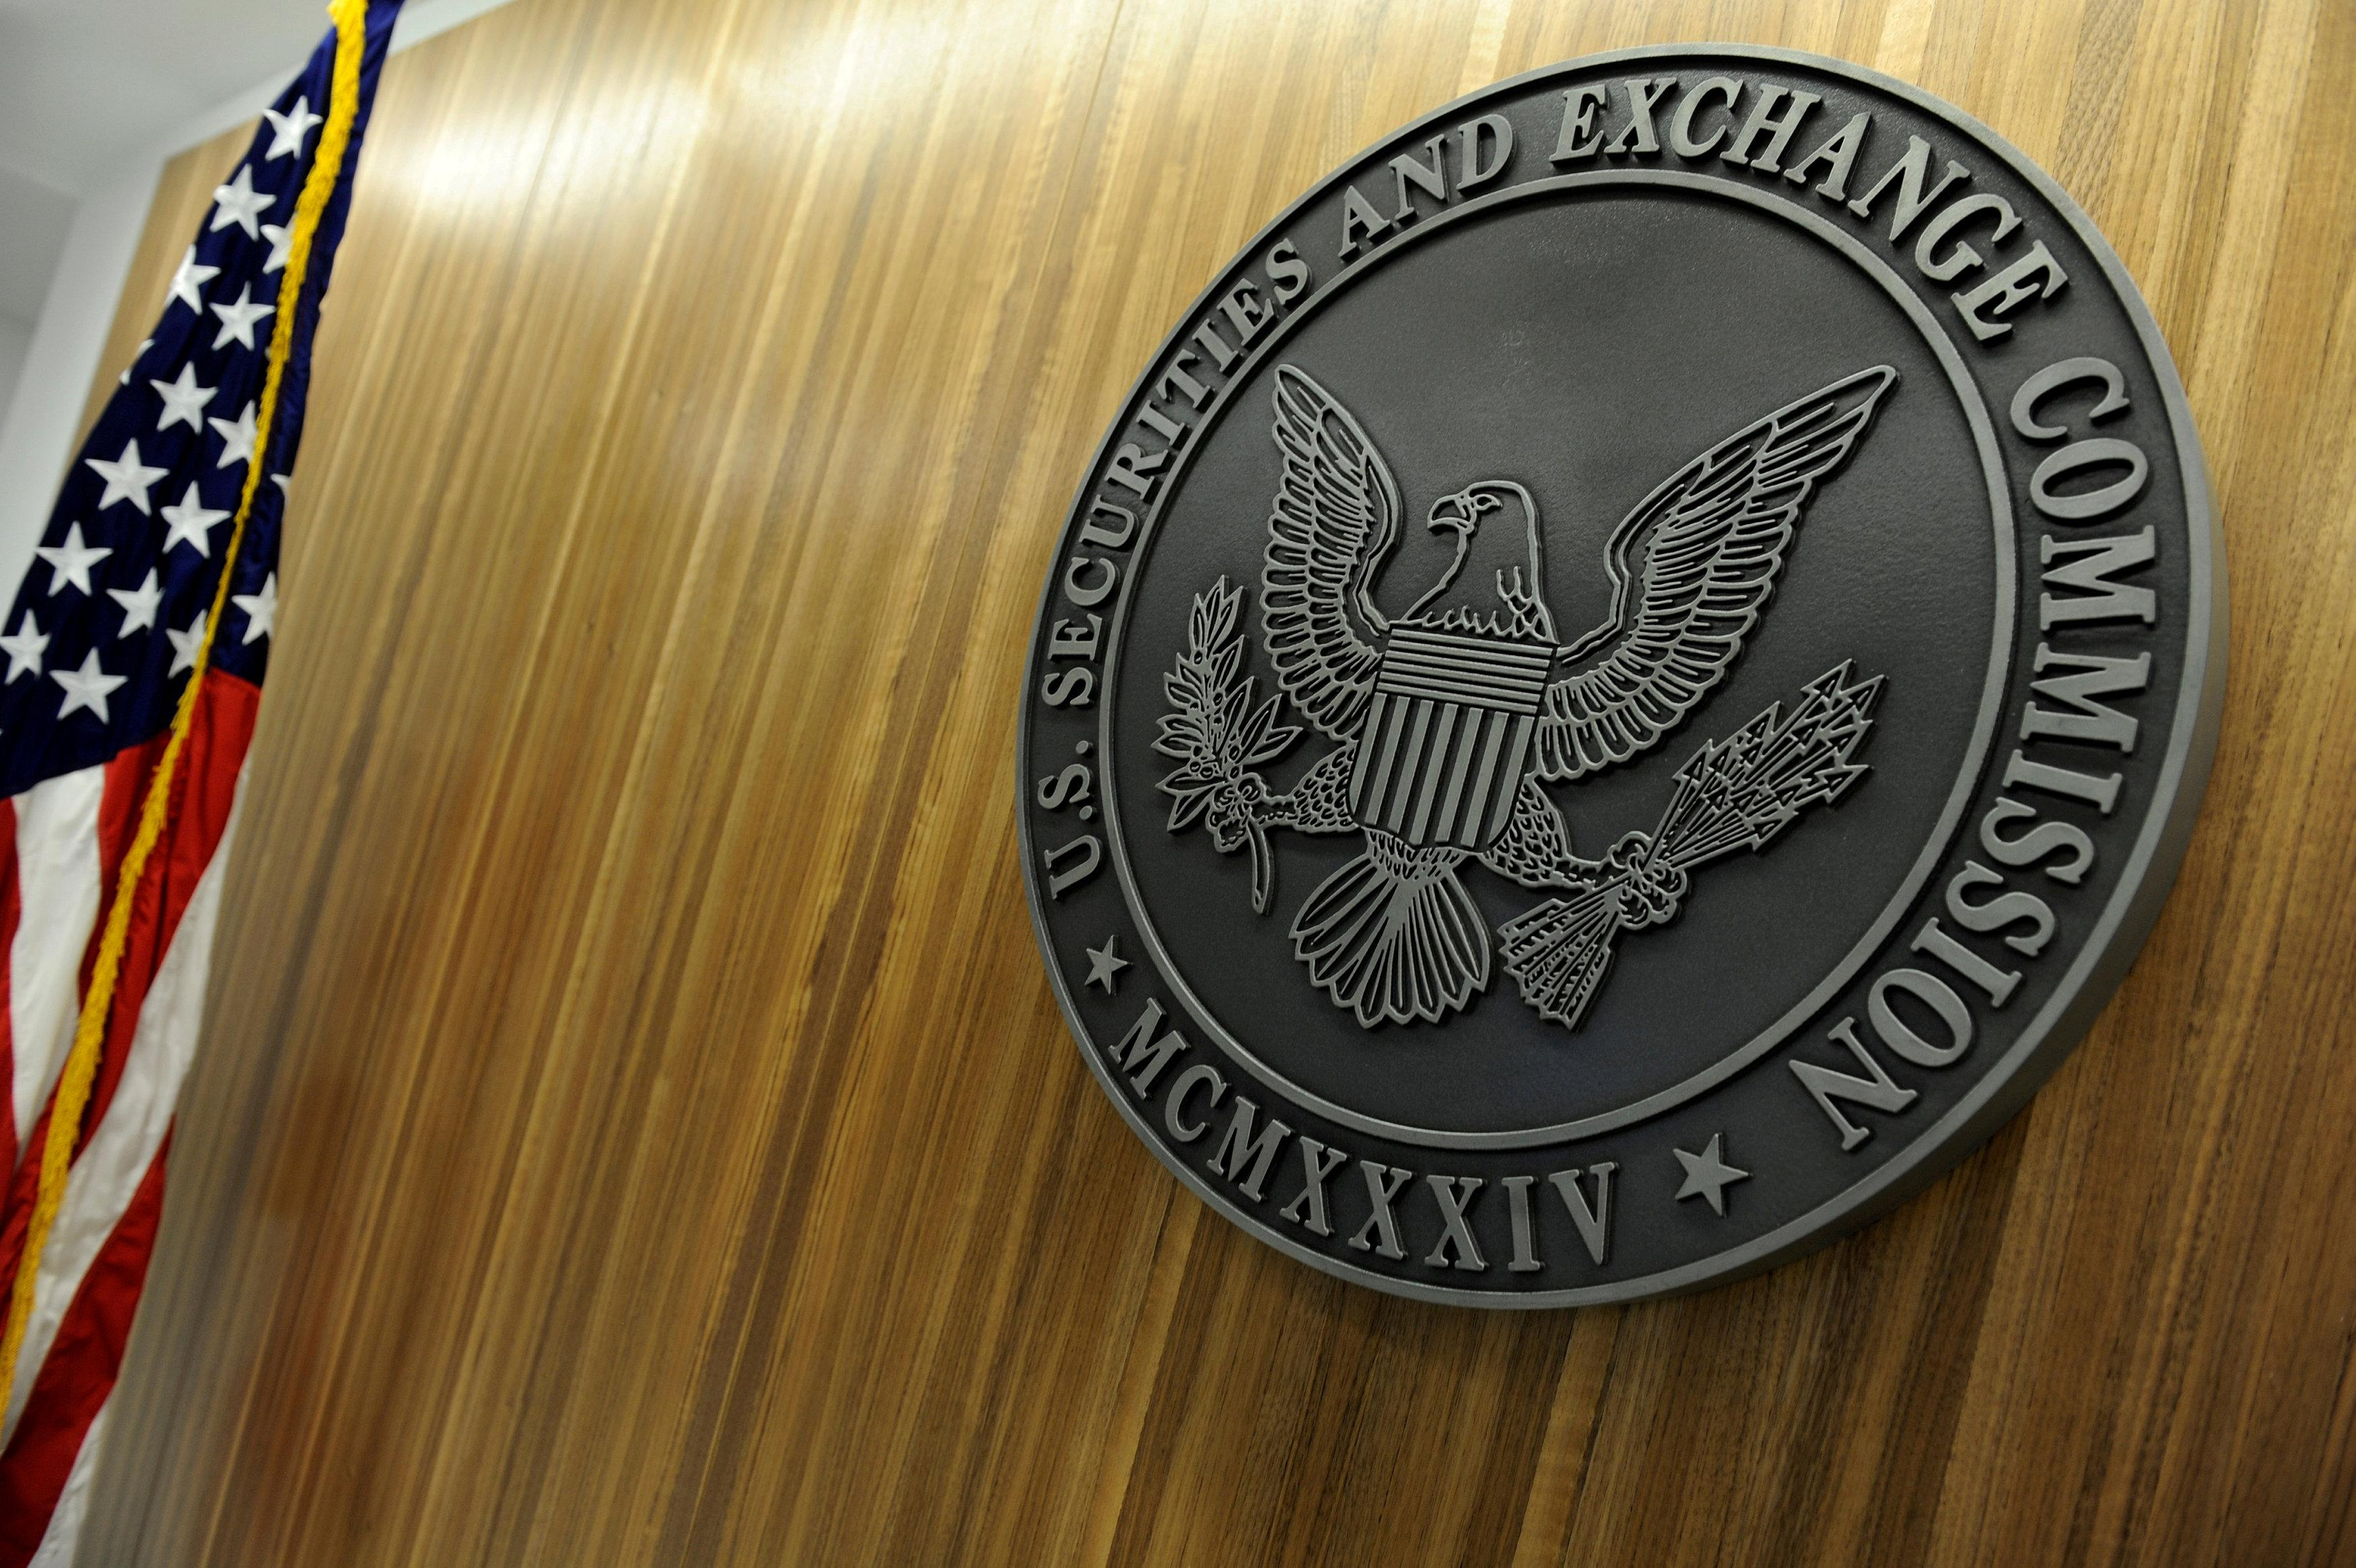 SEC announces ether is not a security